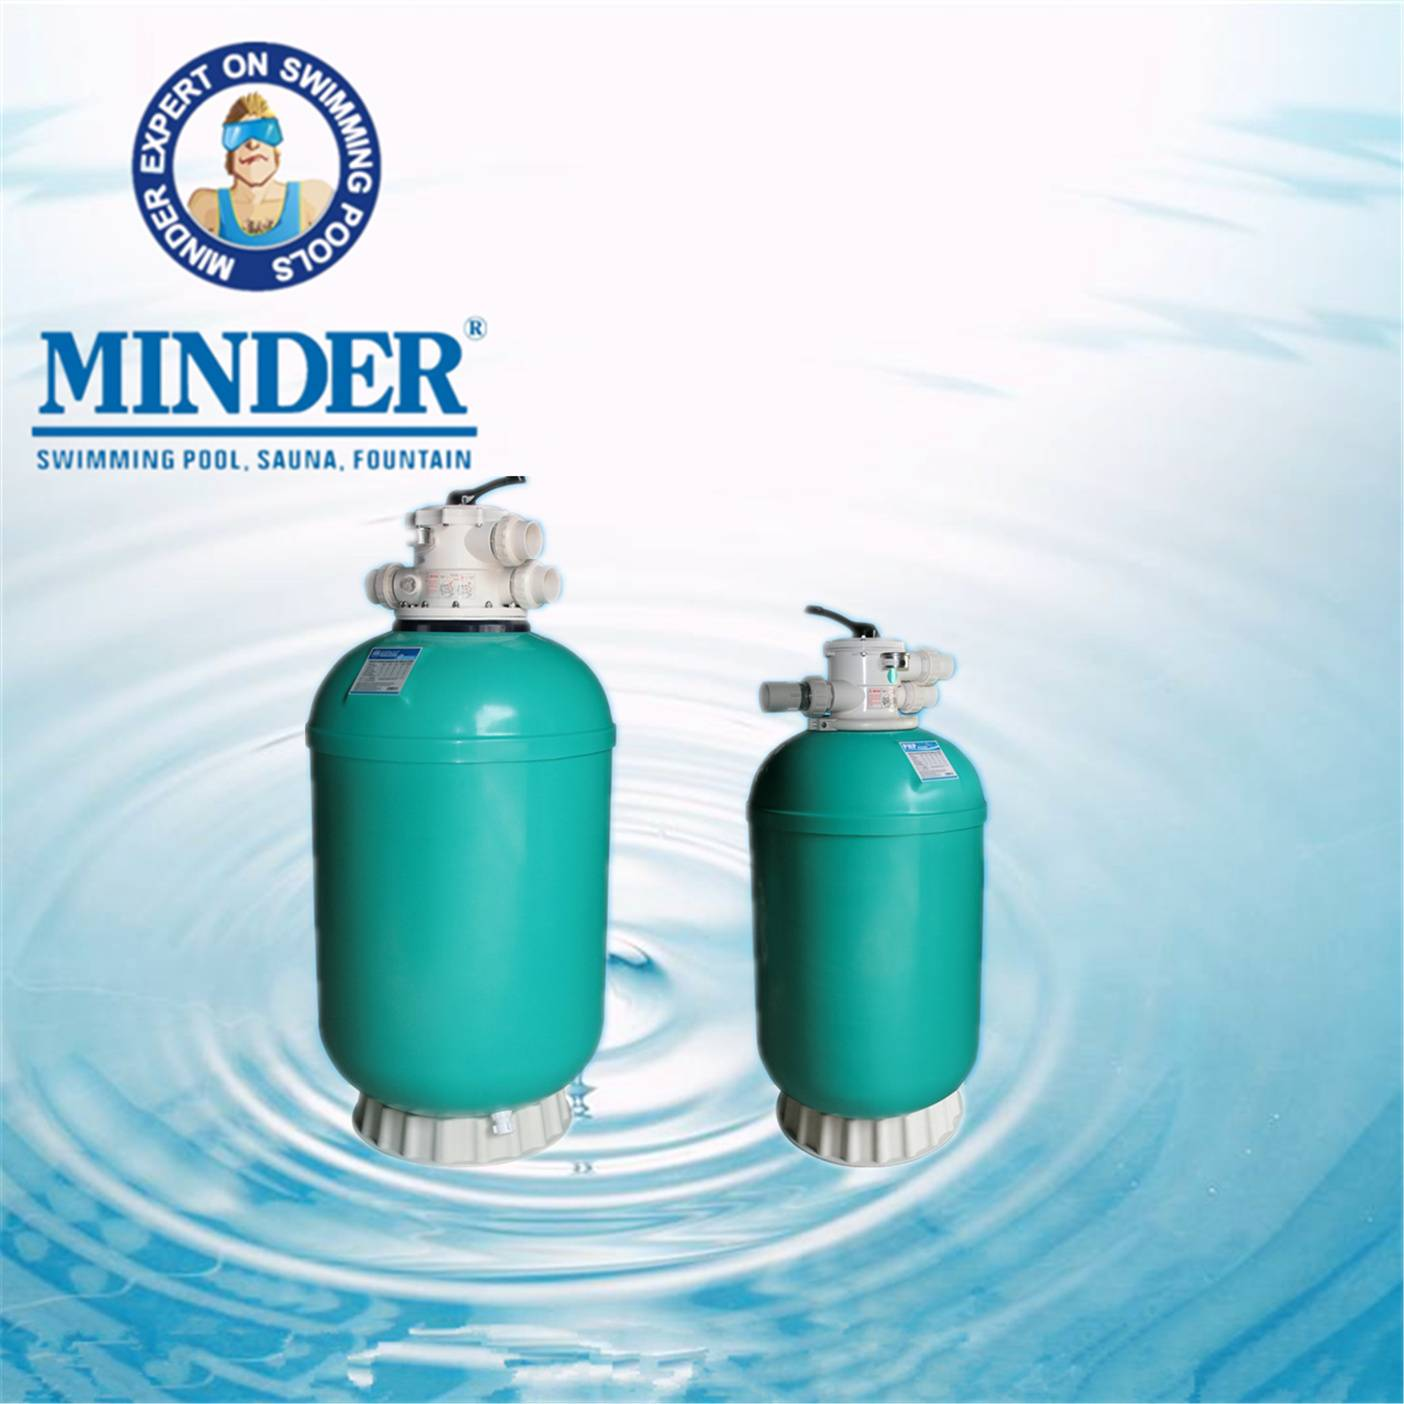 GH series 1.5 valve swimming pool filter deep bed sand filter